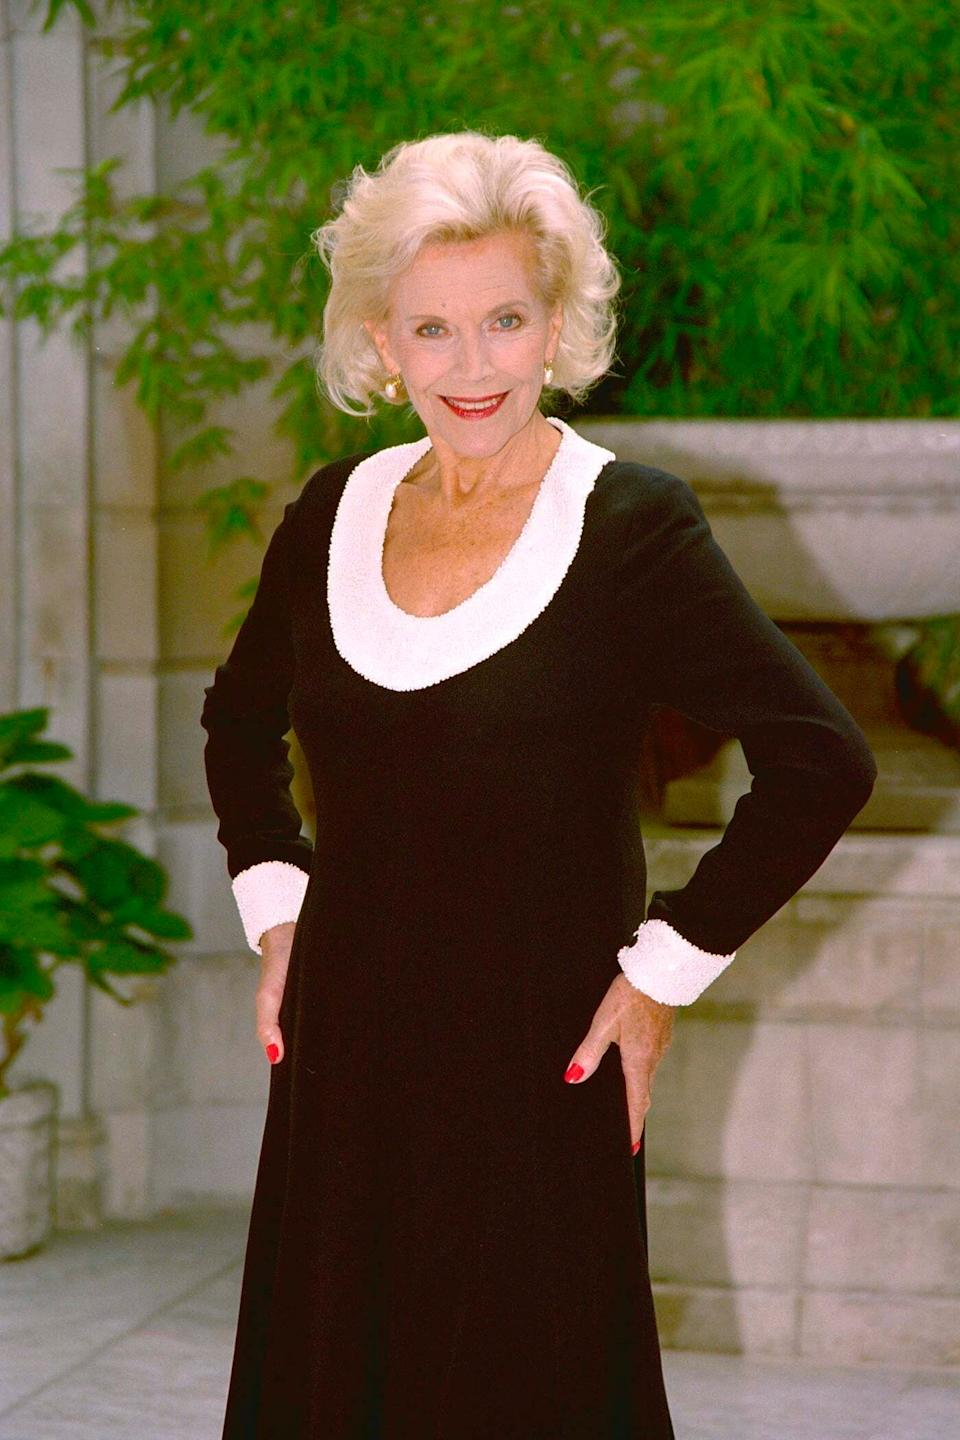 <strong>Honor Blackman (1925 - 2020)<br /><br /></strong>The British star will be best remembered for her roles inThe Avengers, Jason And The Argonauts and, of course, Goldfinger, in which she played one of the James Bond franchise's most iconic characters, Pussy Galore.